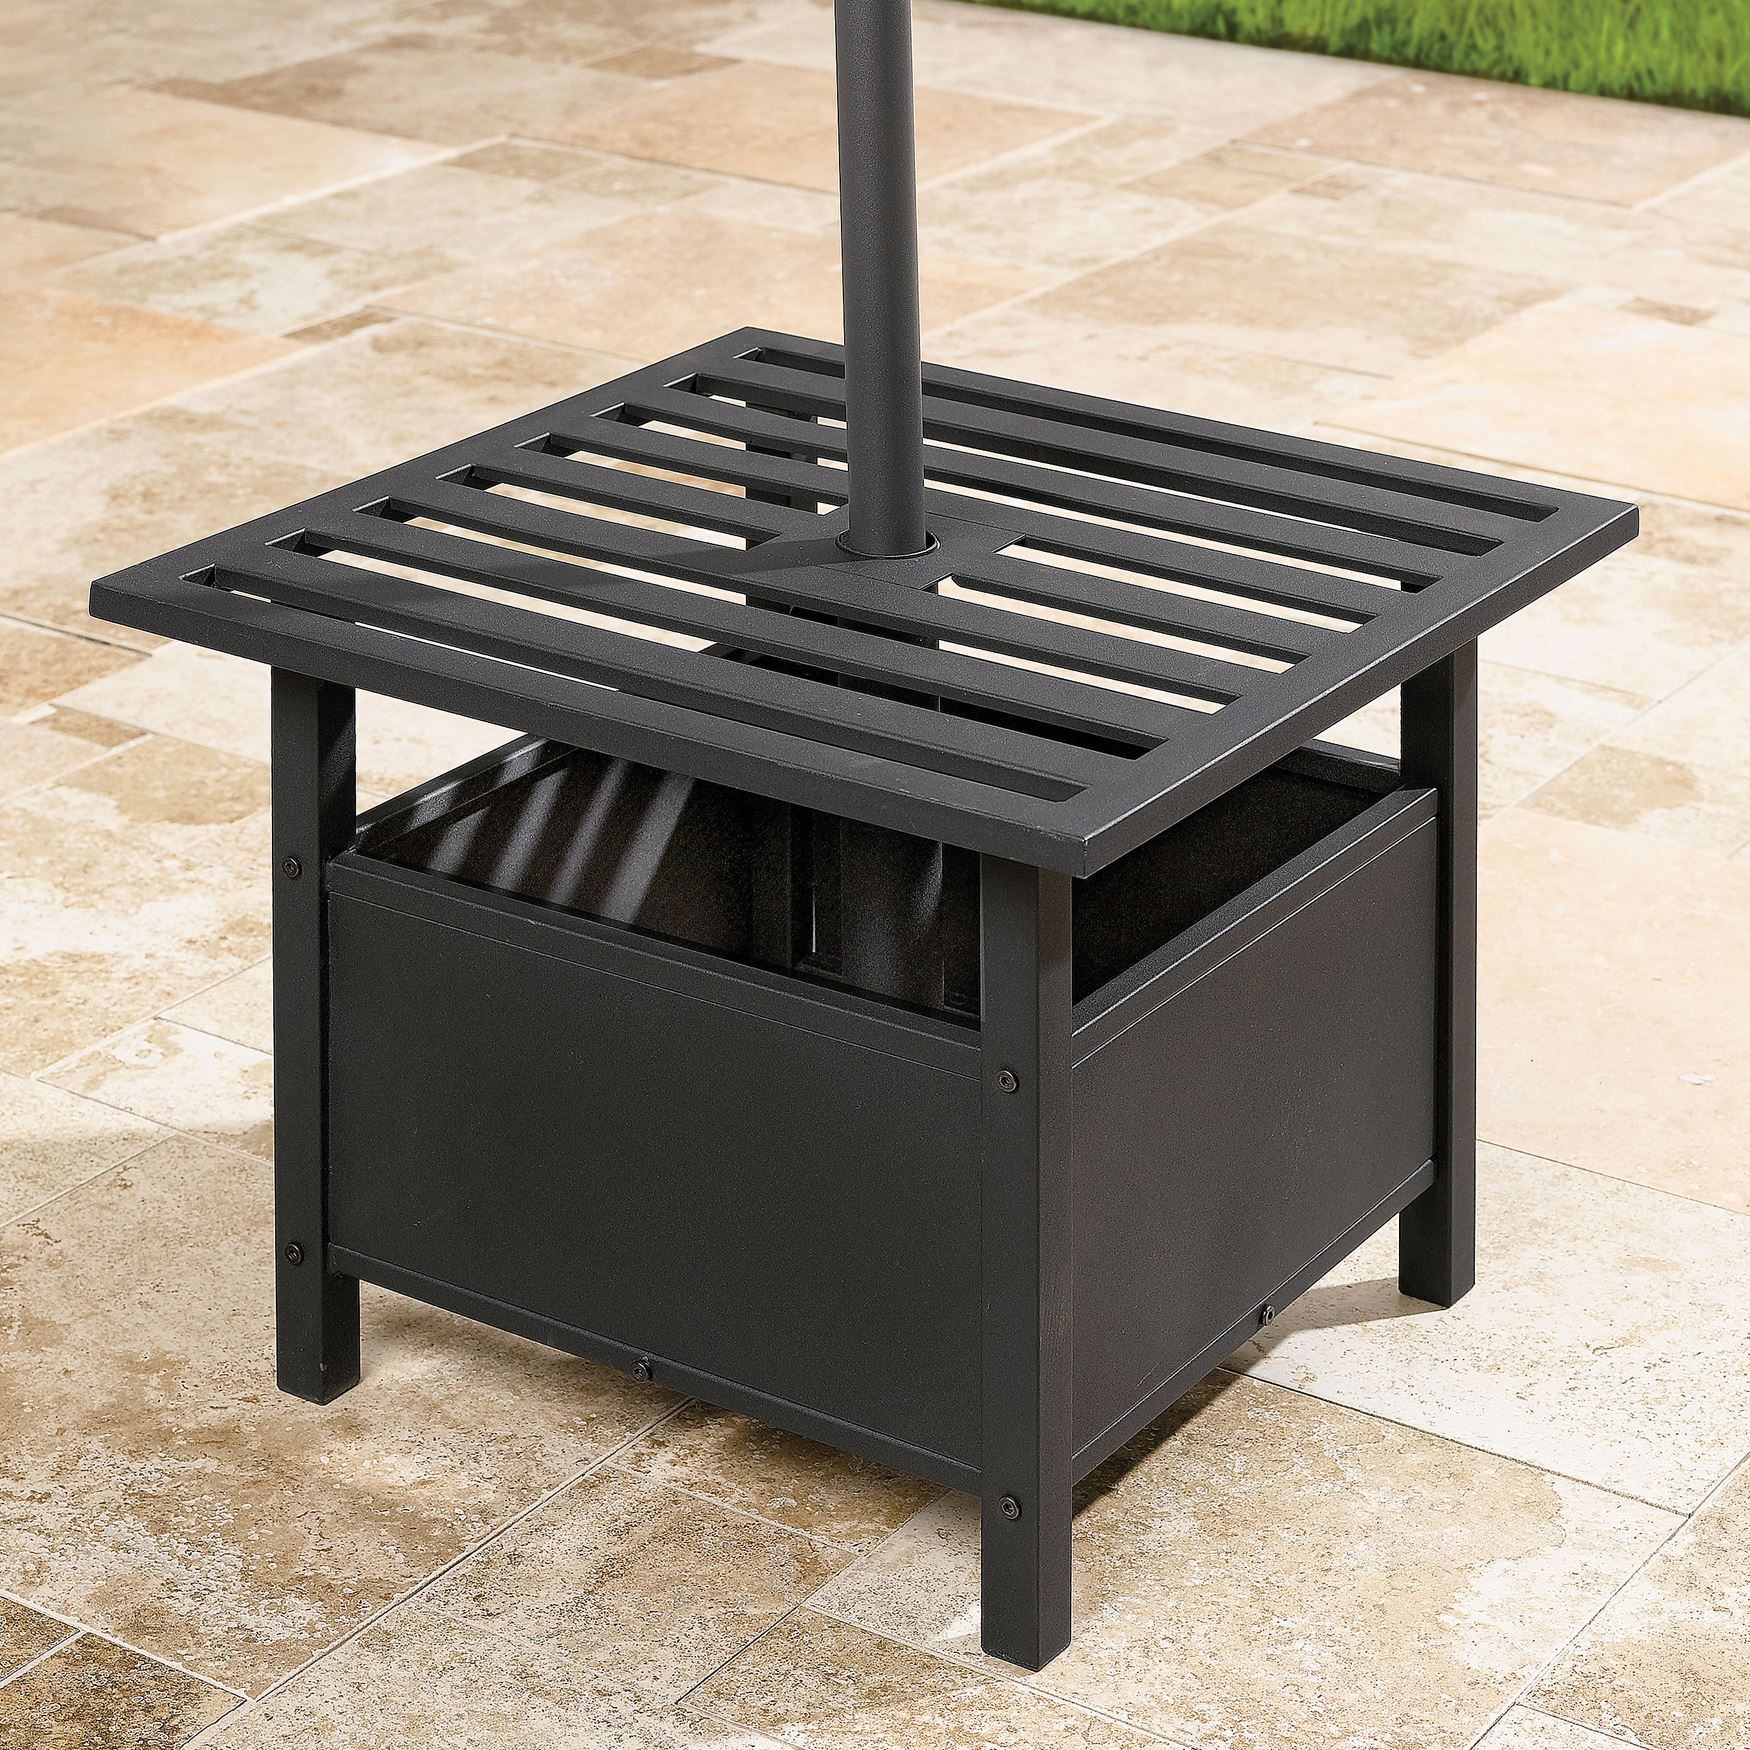 gorgeous small black outdoor side table target wicker kmart white bedside metal wooden argos and square glass lamps wood studio ideas gloss plastic round tables ana pedestal full